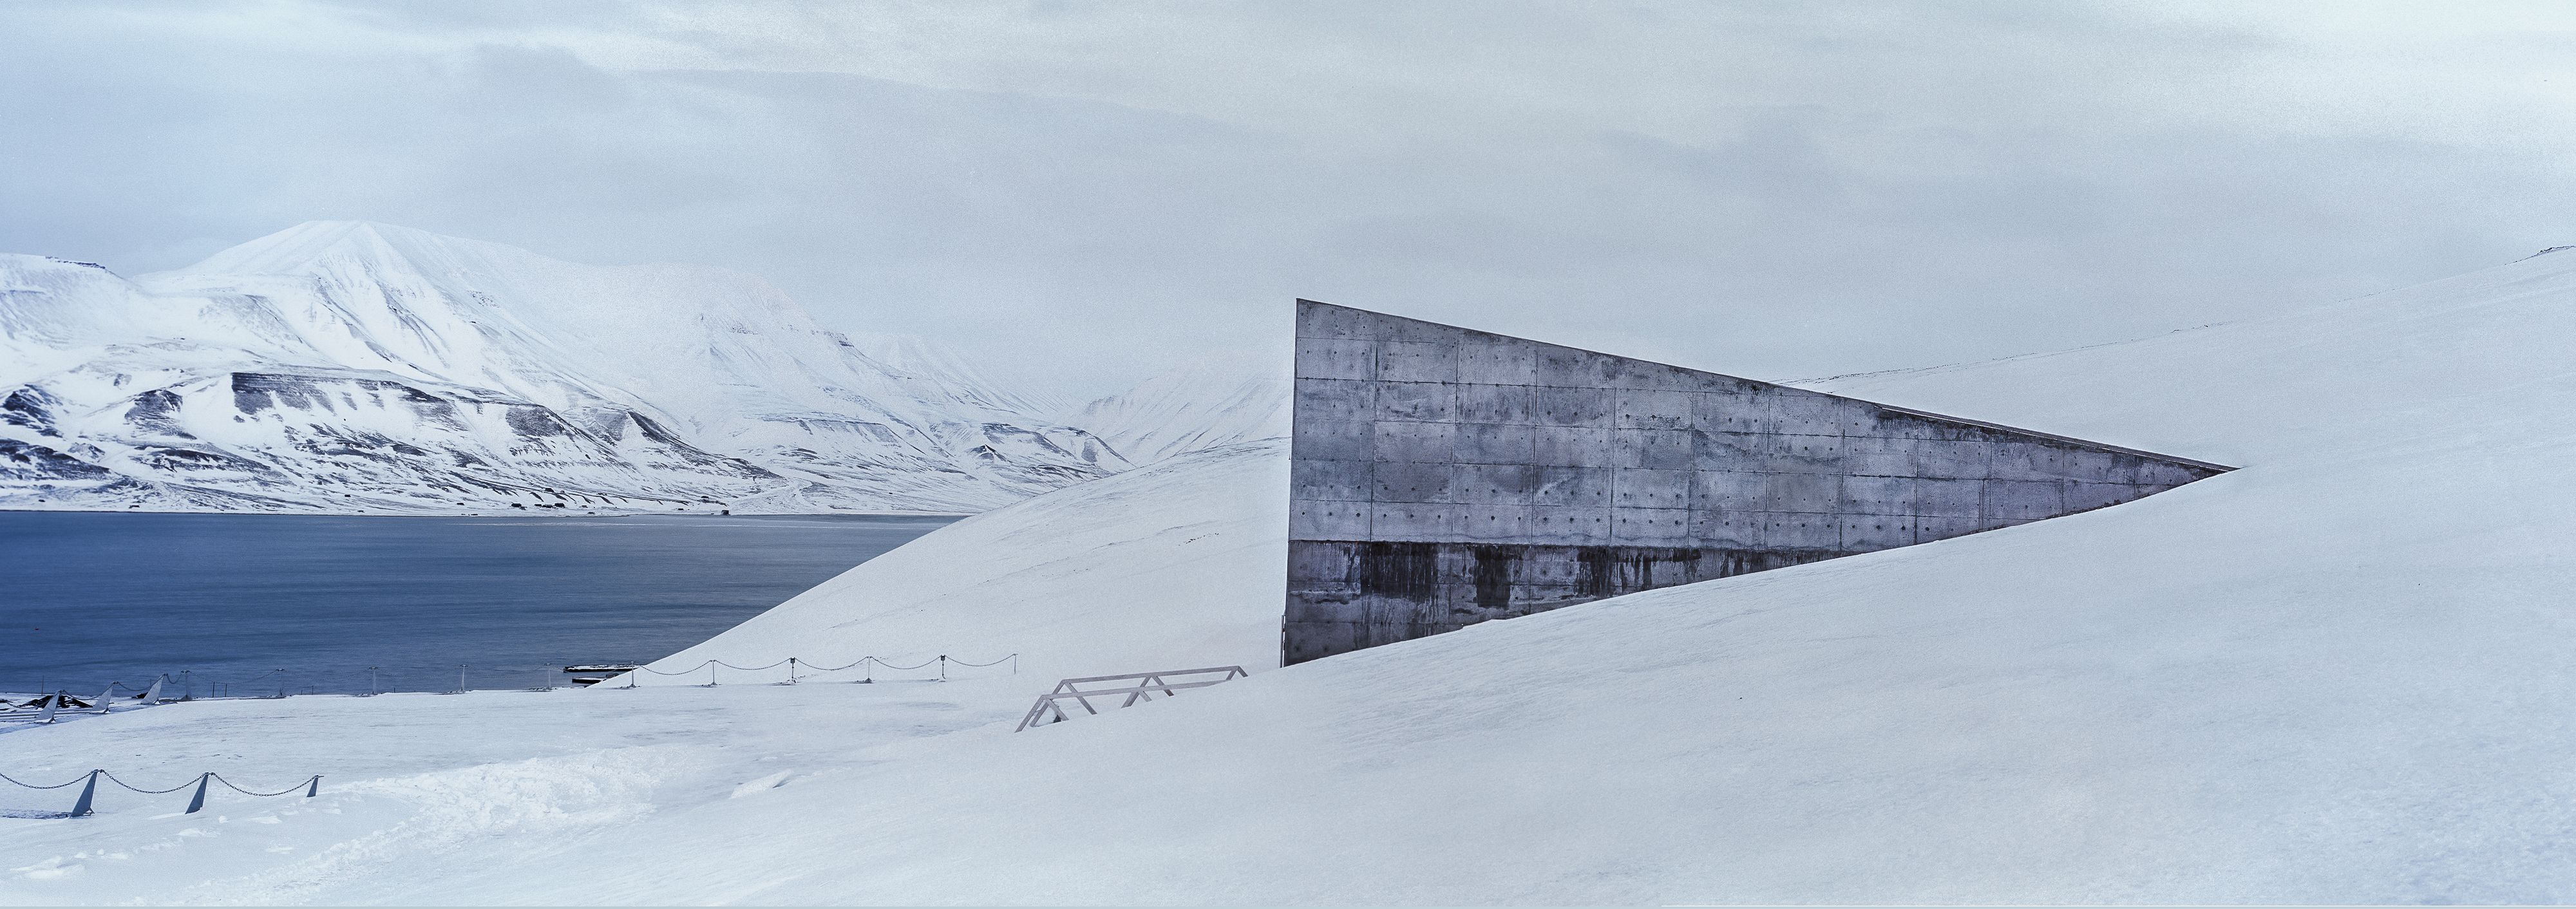 Seed Vault, Arctic Technology, Spitsbergen,Christian Houge,Photographie